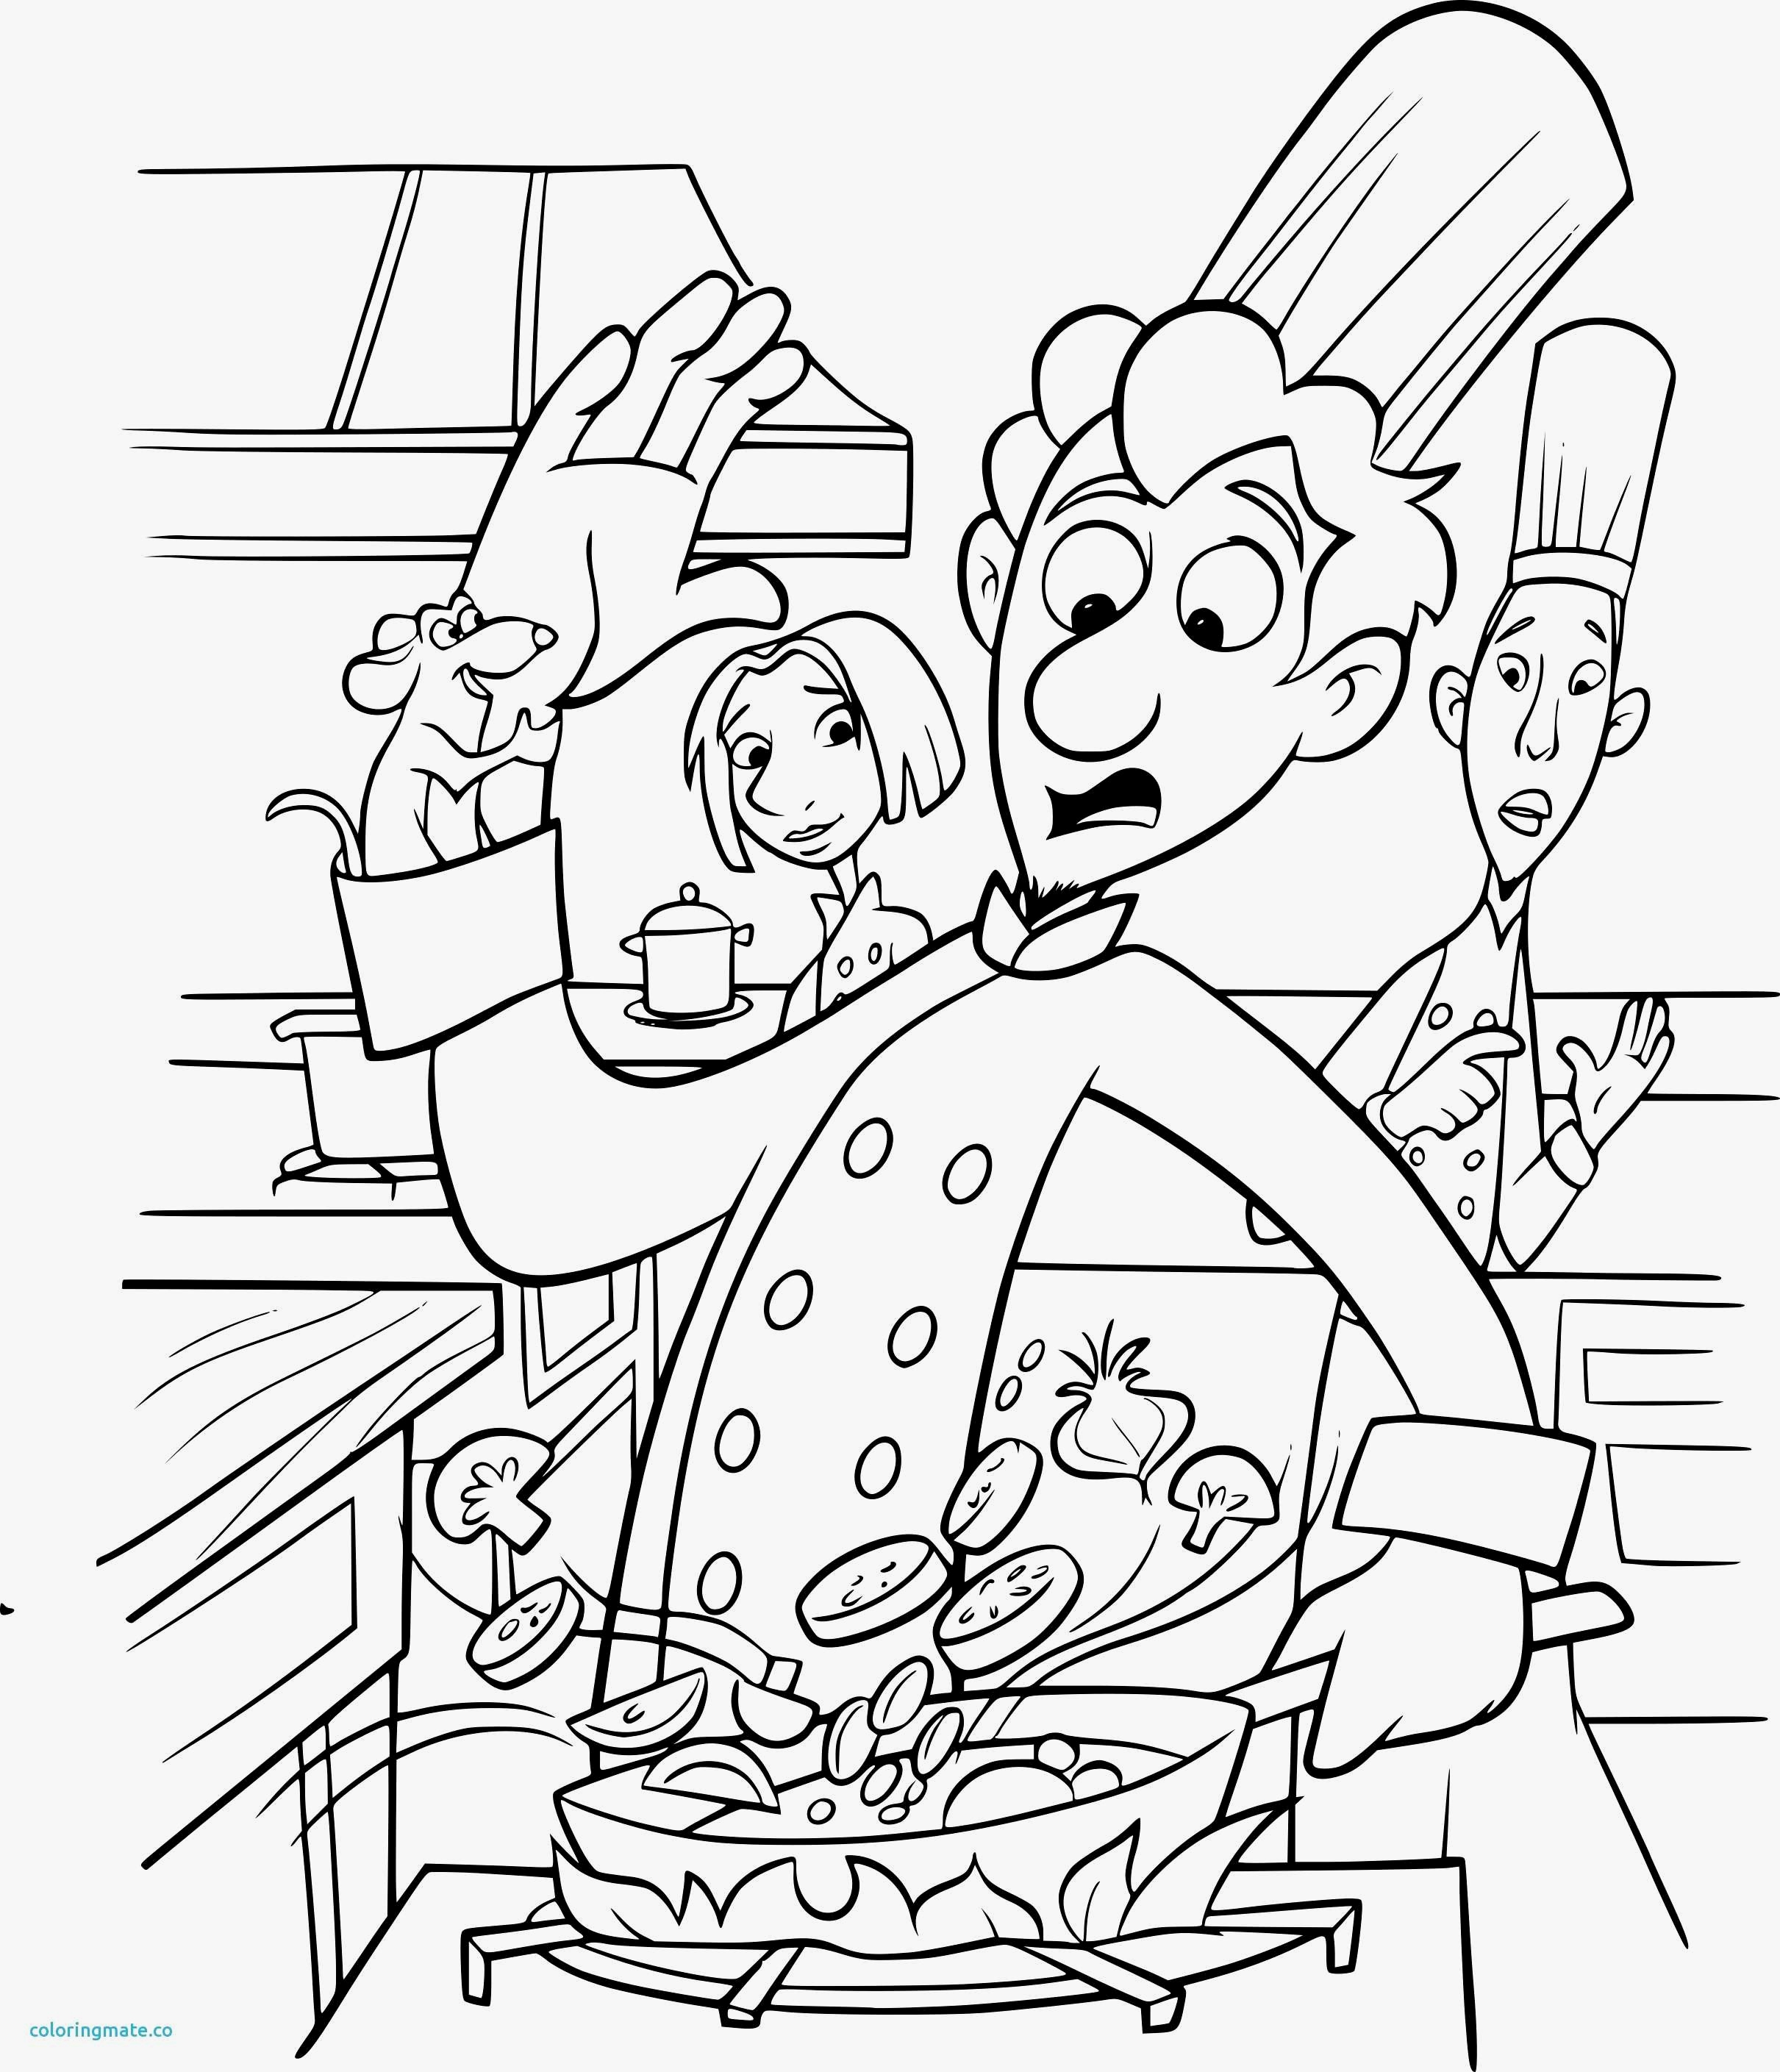 circus coloring pages Download-Image Coloriage Coloriage Reine Des Neiges Coloriage 2l2phant 0d Coloriage Image Coloriage Circus Image Coloriage Moana Coloring Pages 17-t